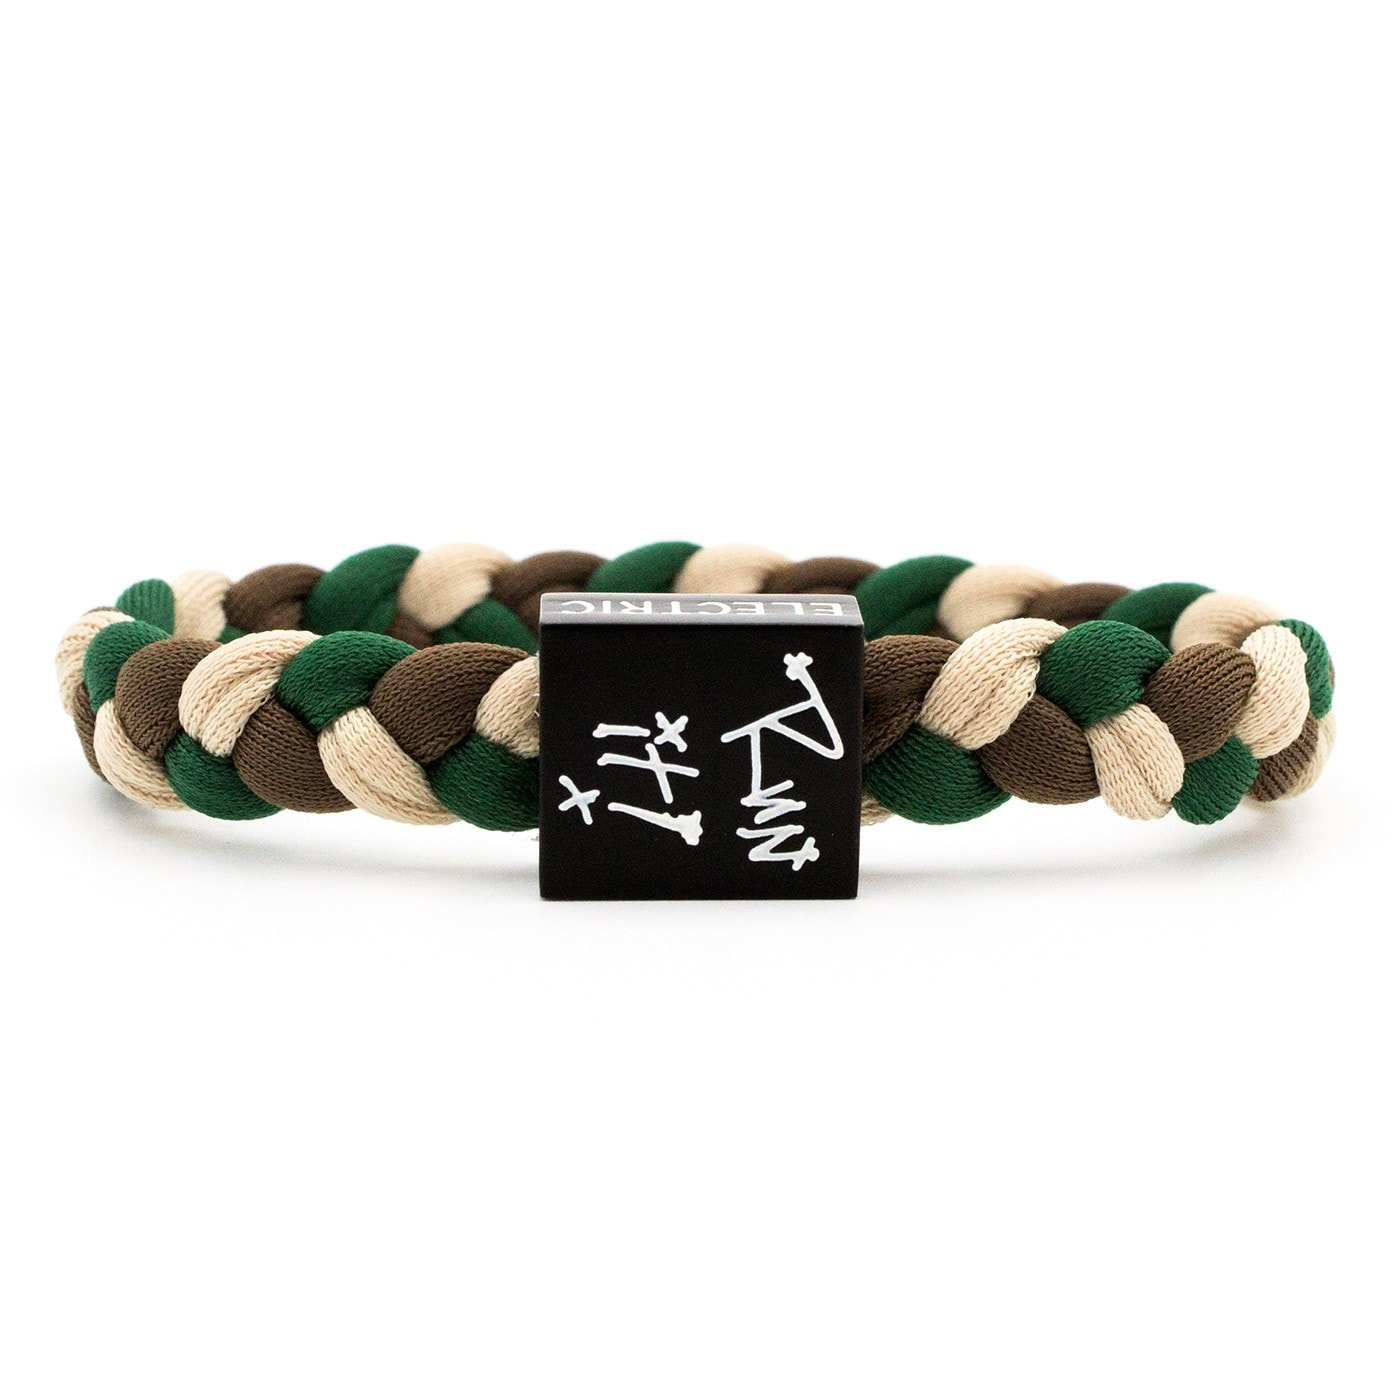 "Rory Kramer ""Run It"" Bracelet"